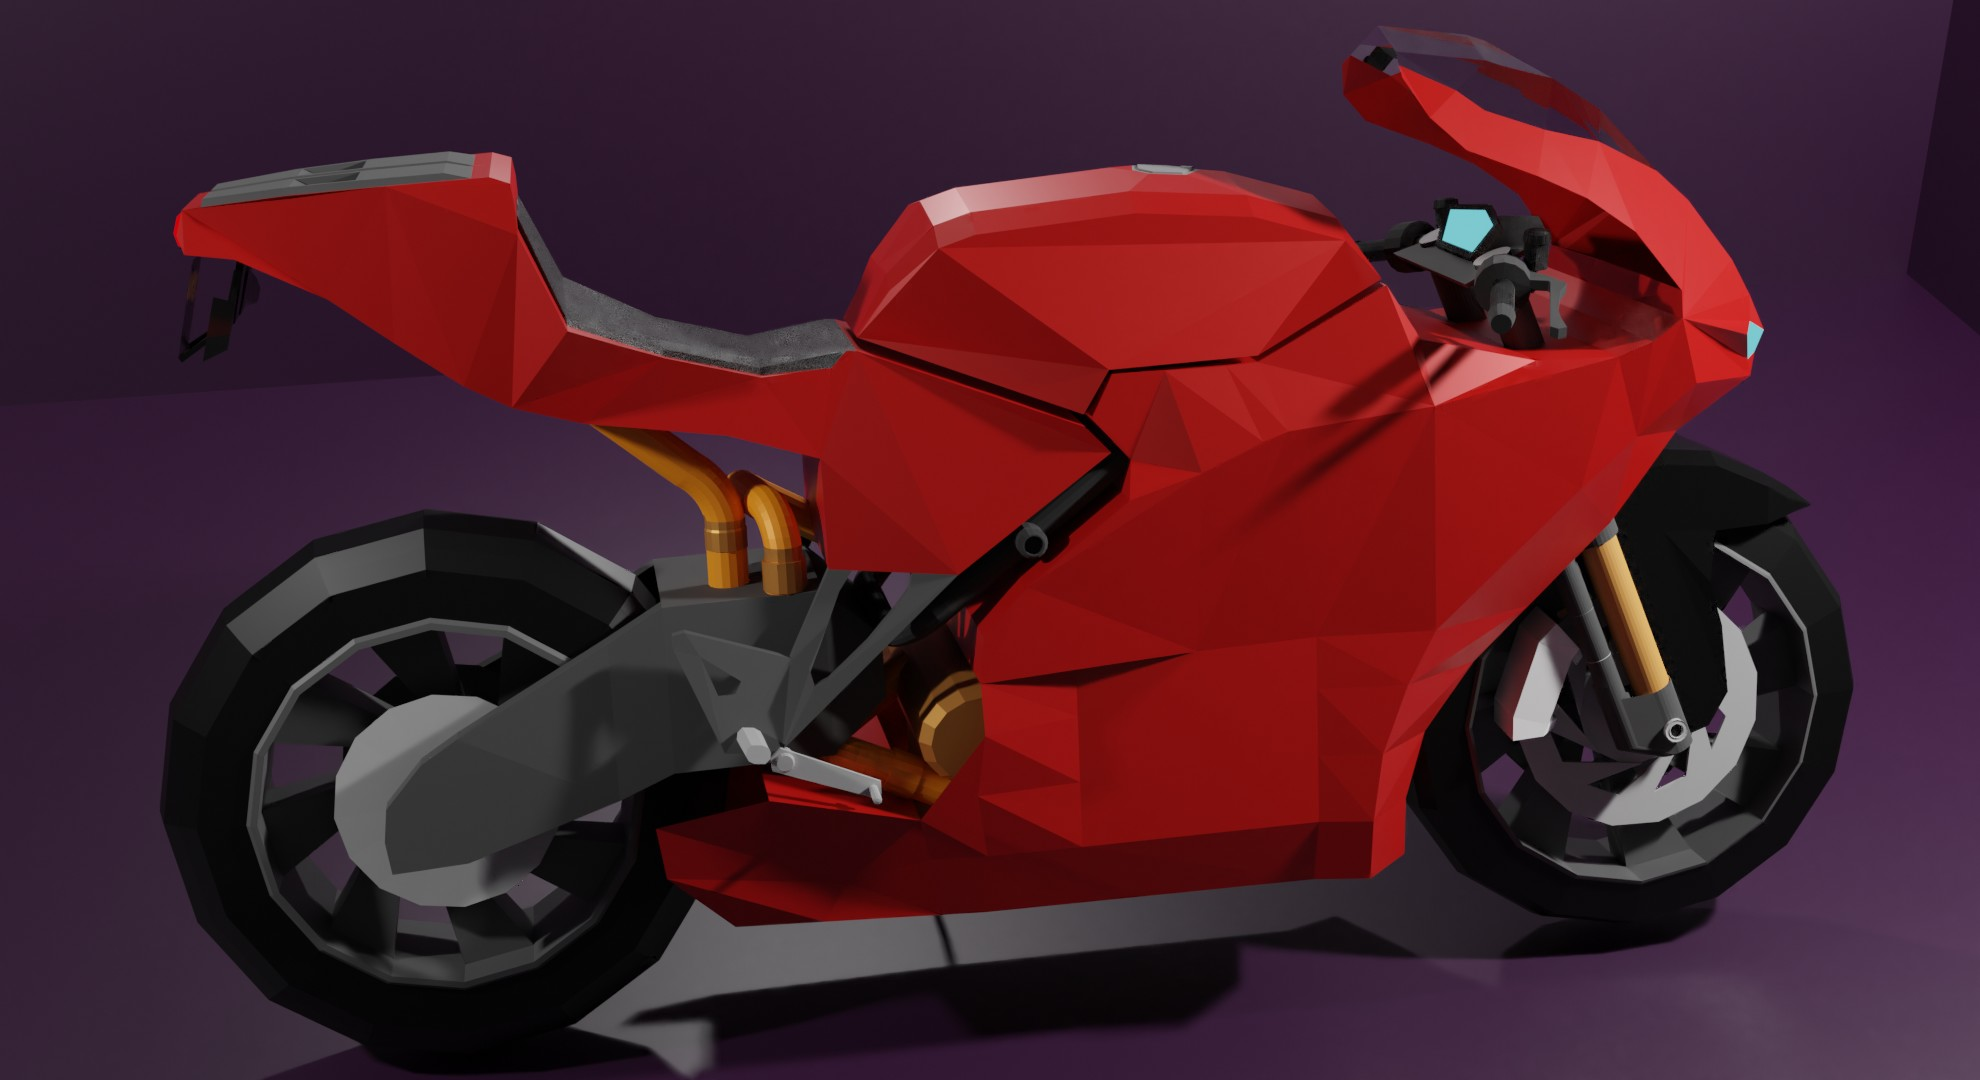 Low Poly Ducati Desmosedici rr preview image 2